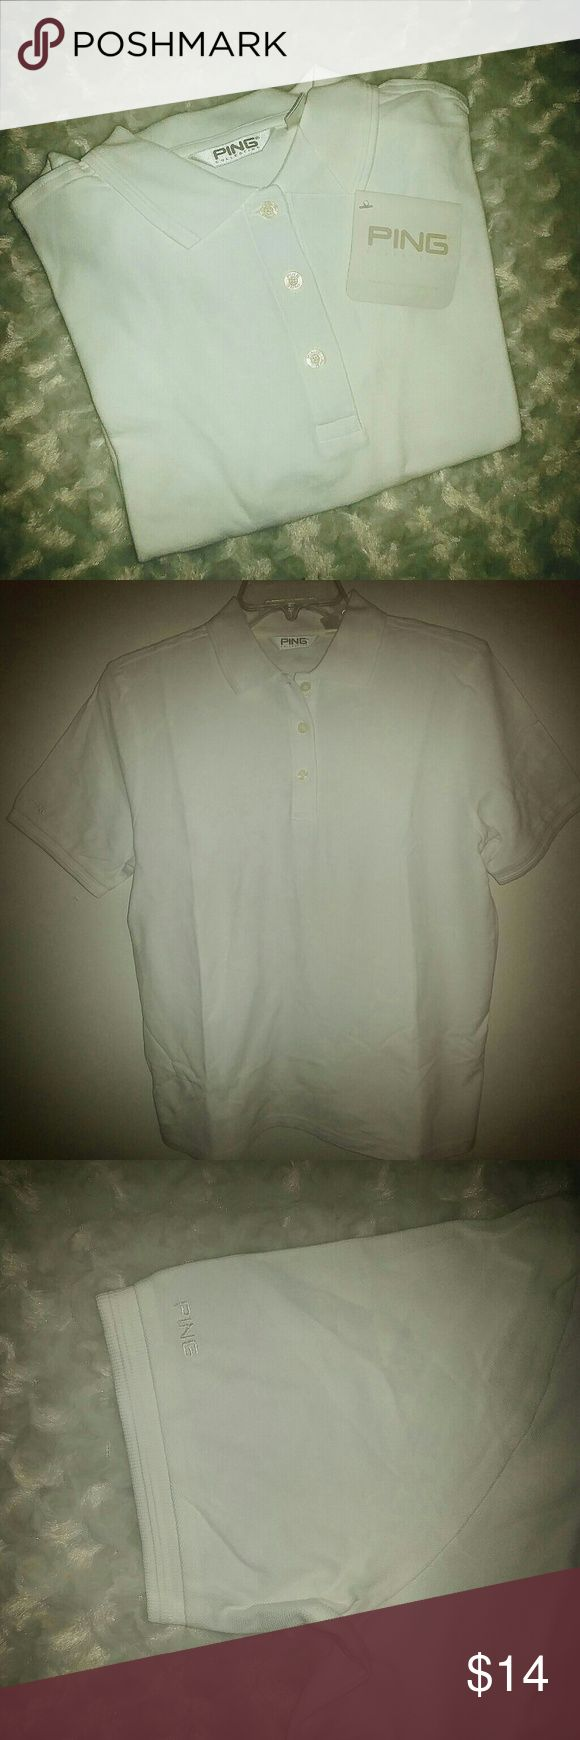 White Ping Polo Golf Shirt White Ping Polo Golf Shirt Ping Shirts Polos